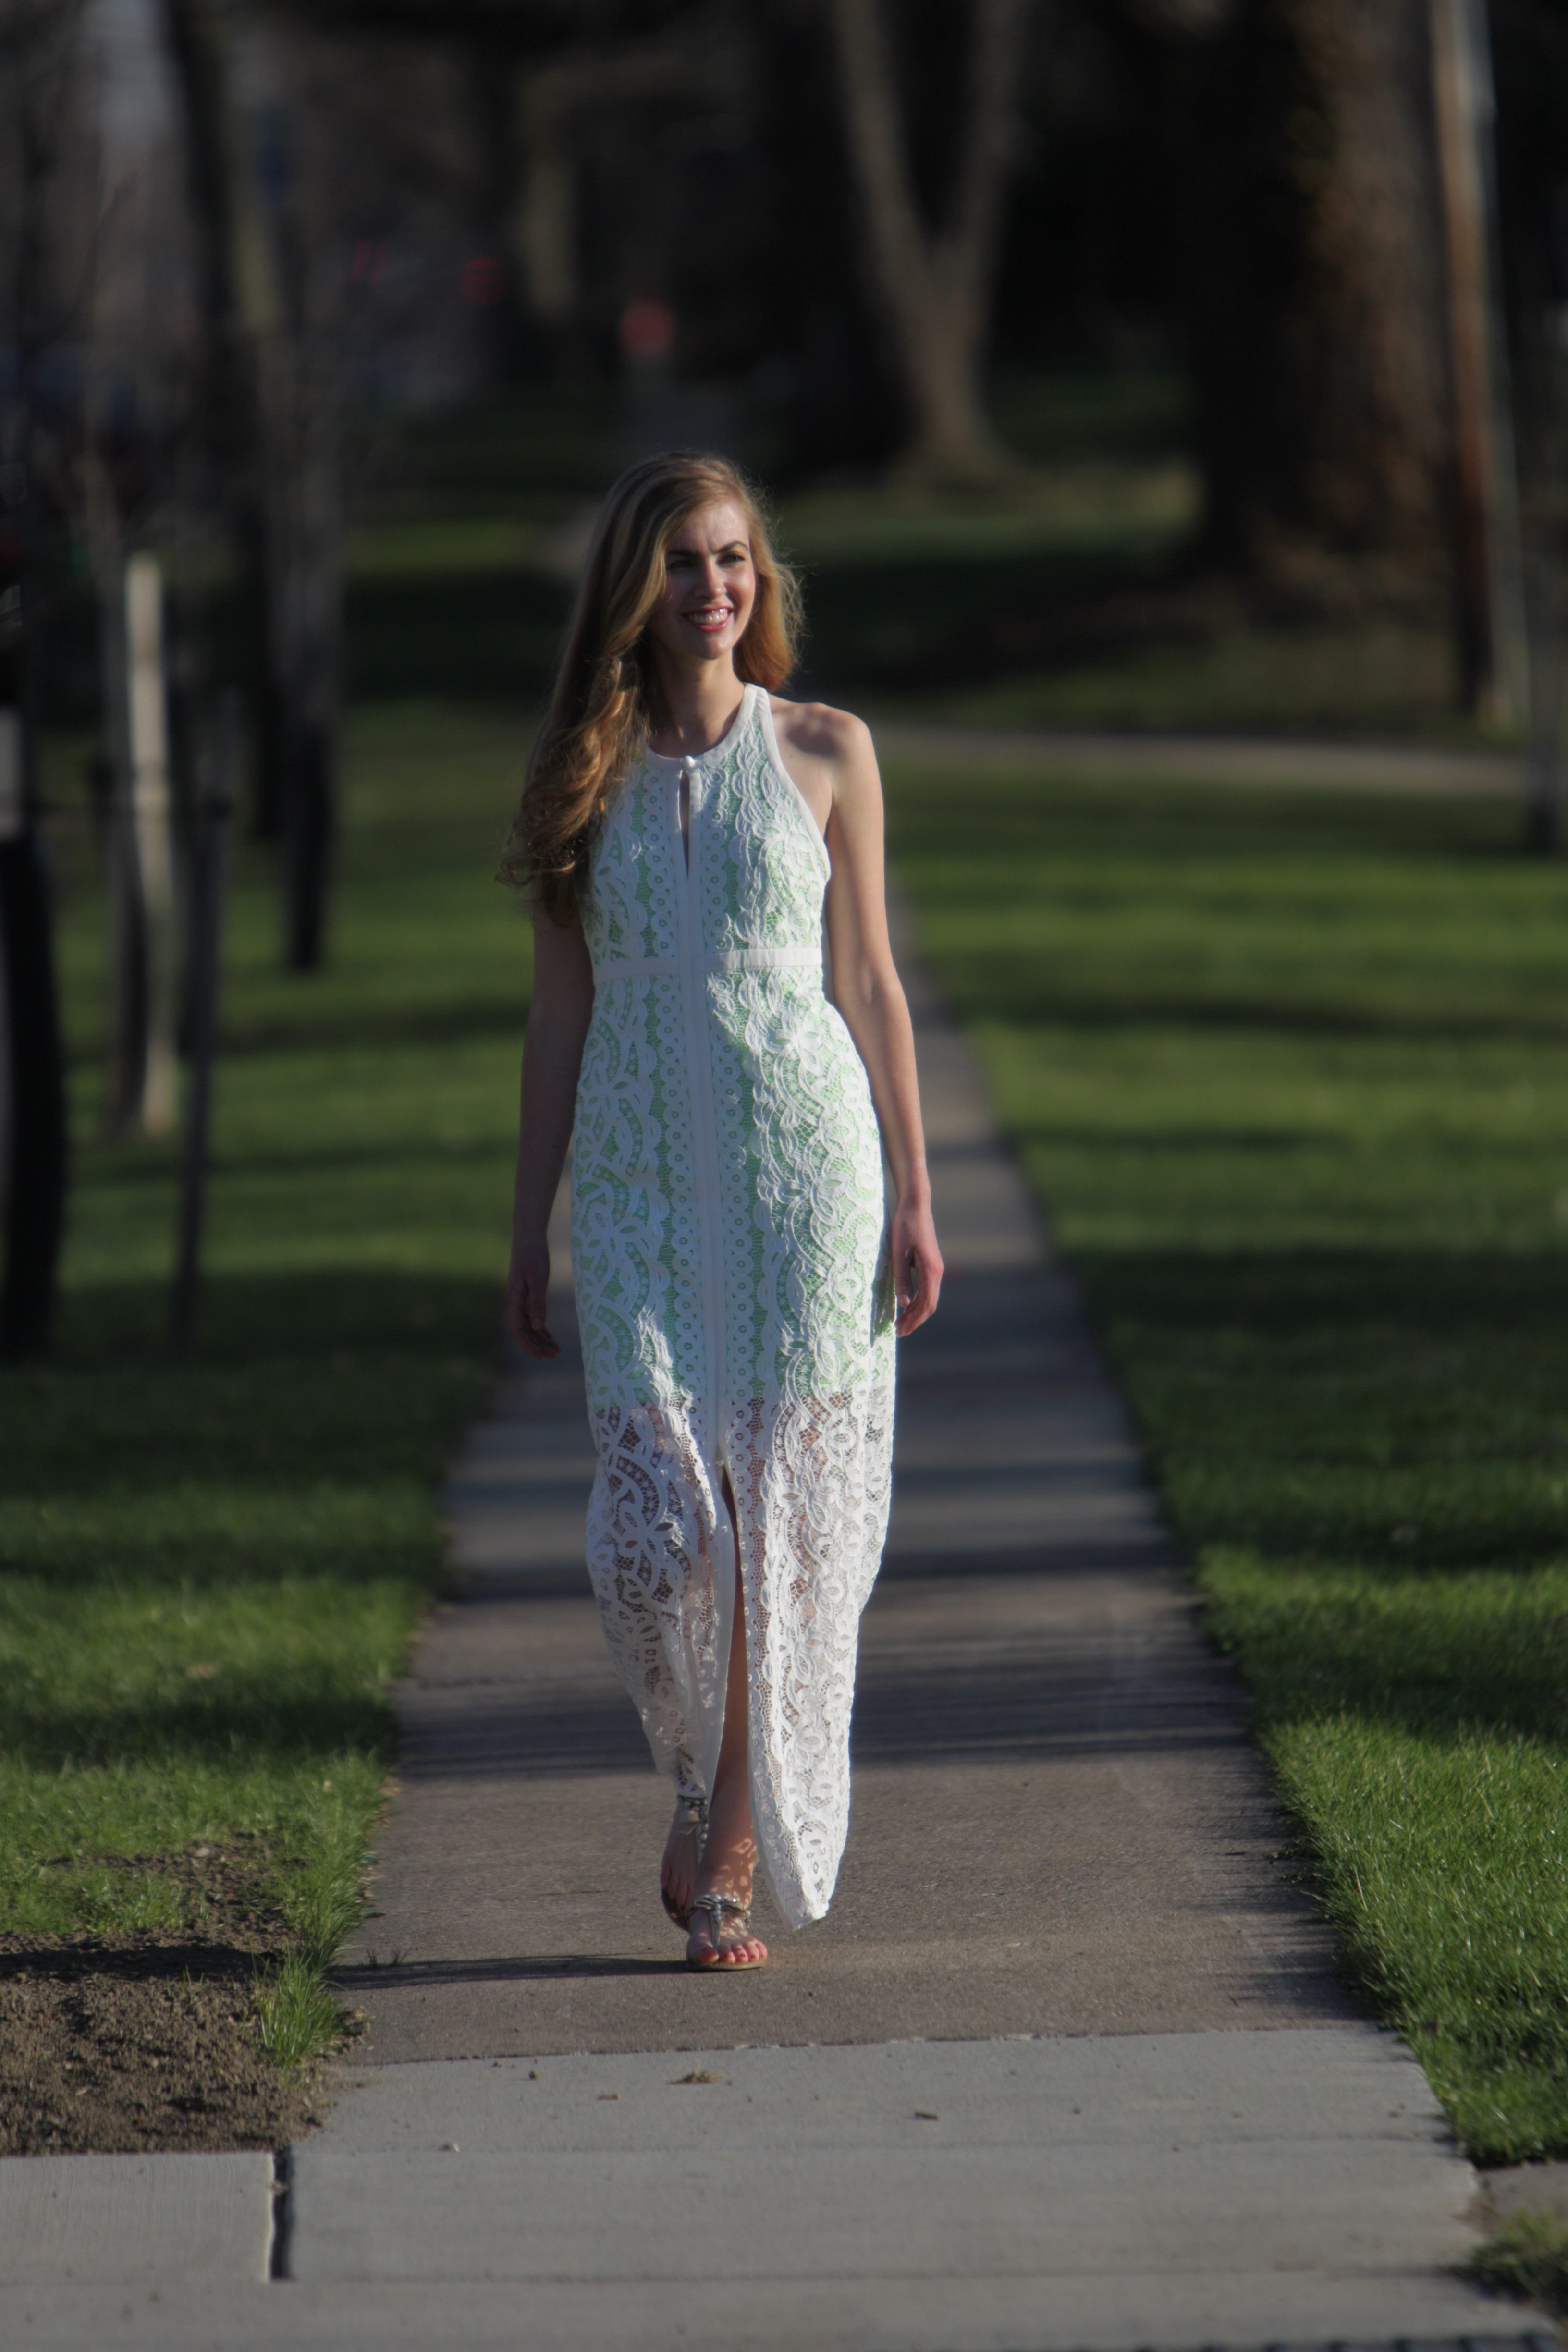 Model Kennedy Copeland takes a stroll in Williamsville during a recent fashion shoot. The maxi dress is from Leelee in Williamsville.